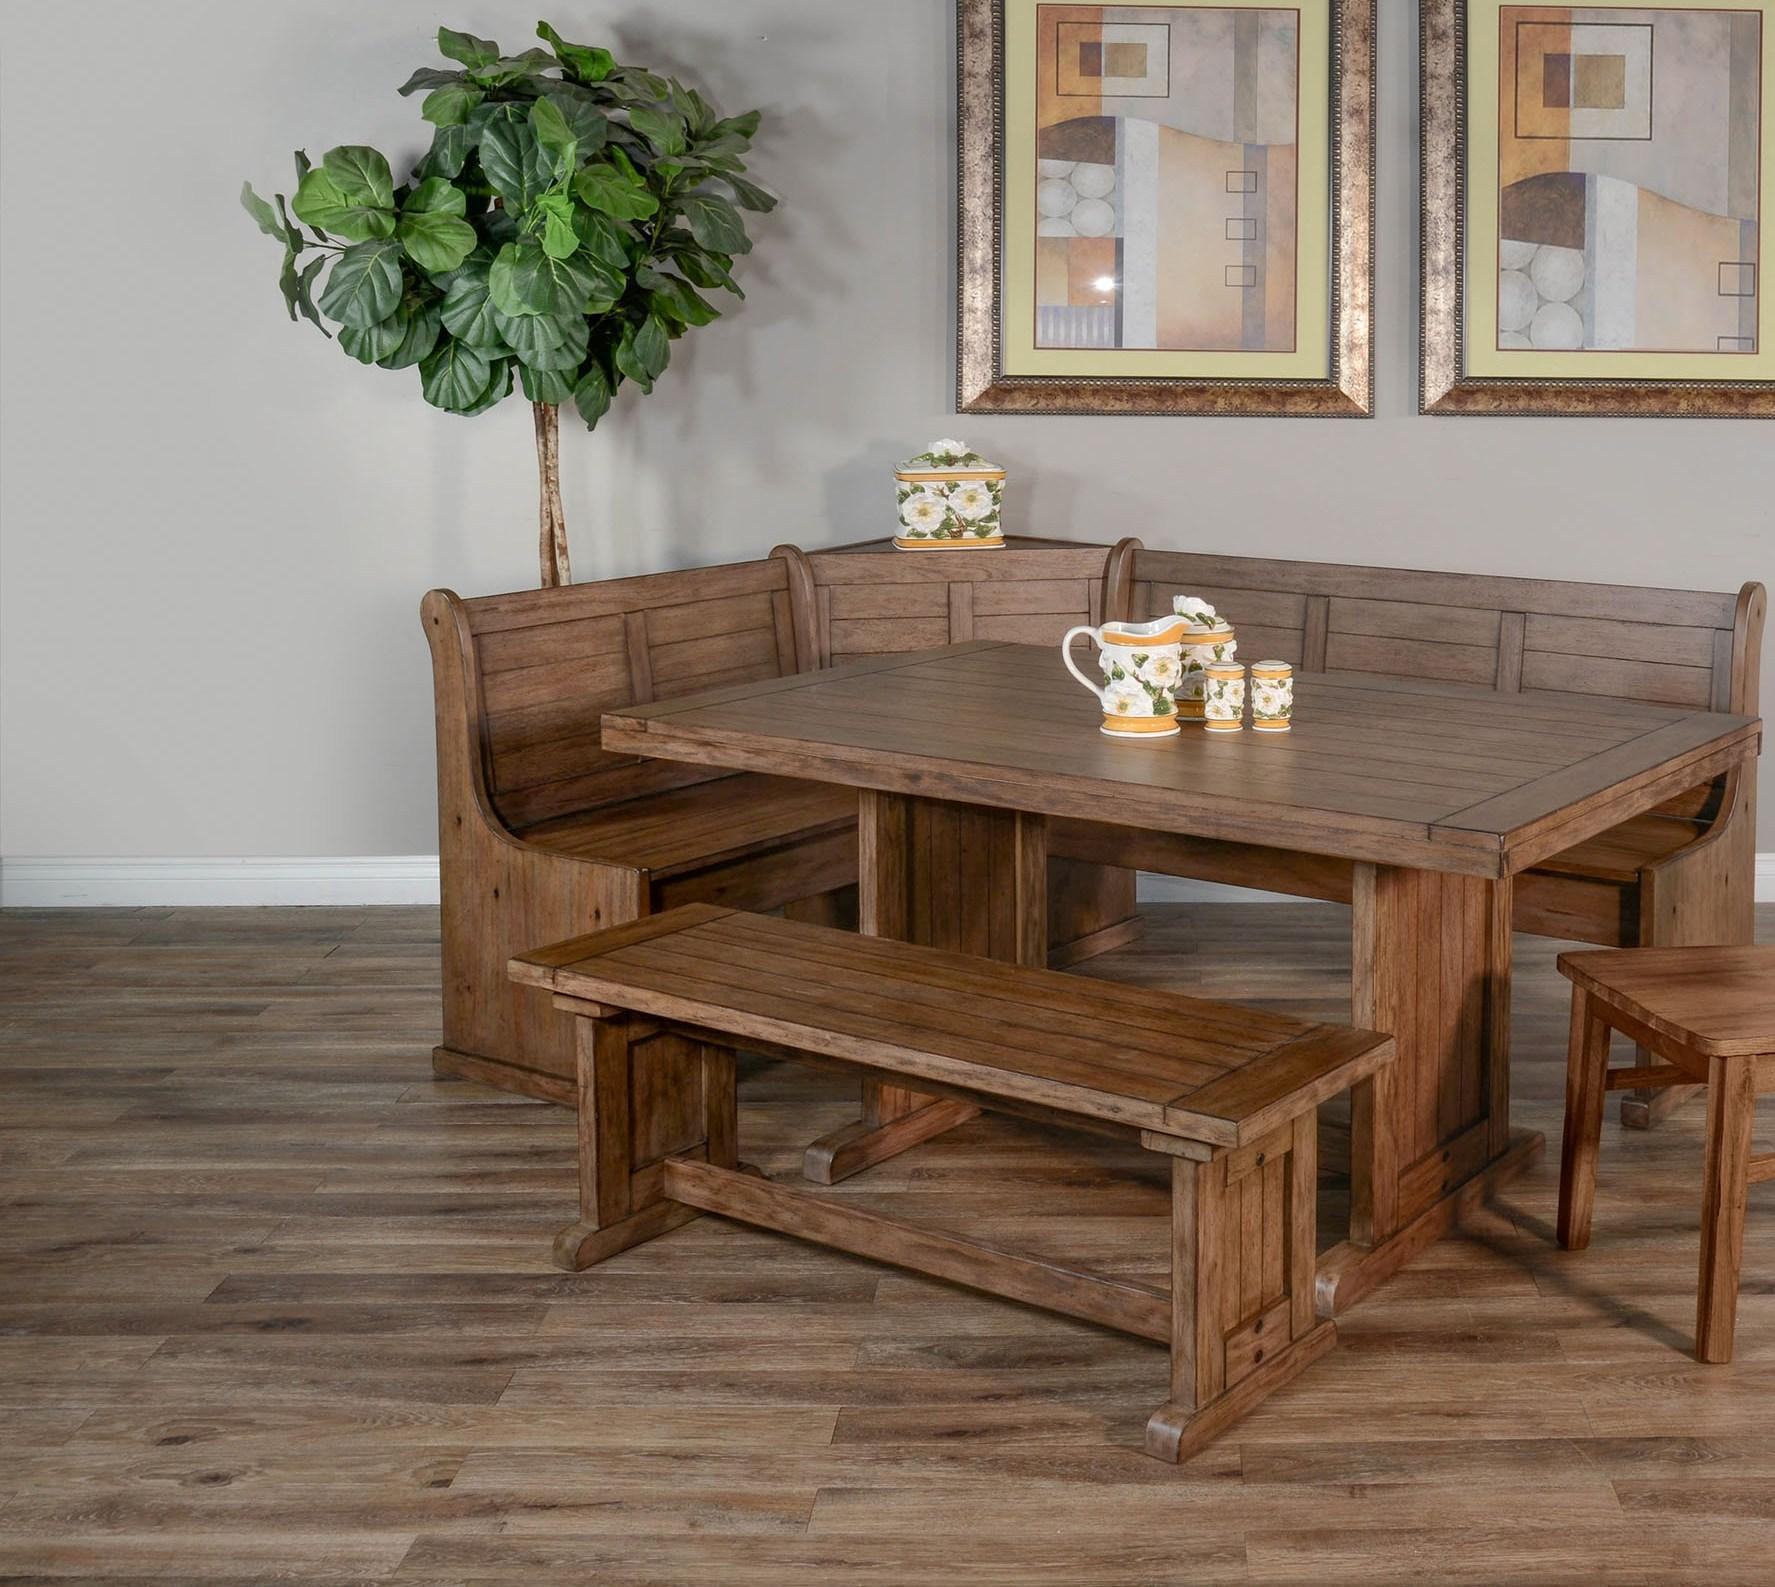 Reversible Breakfast Nook with Storage Benches Buckskin